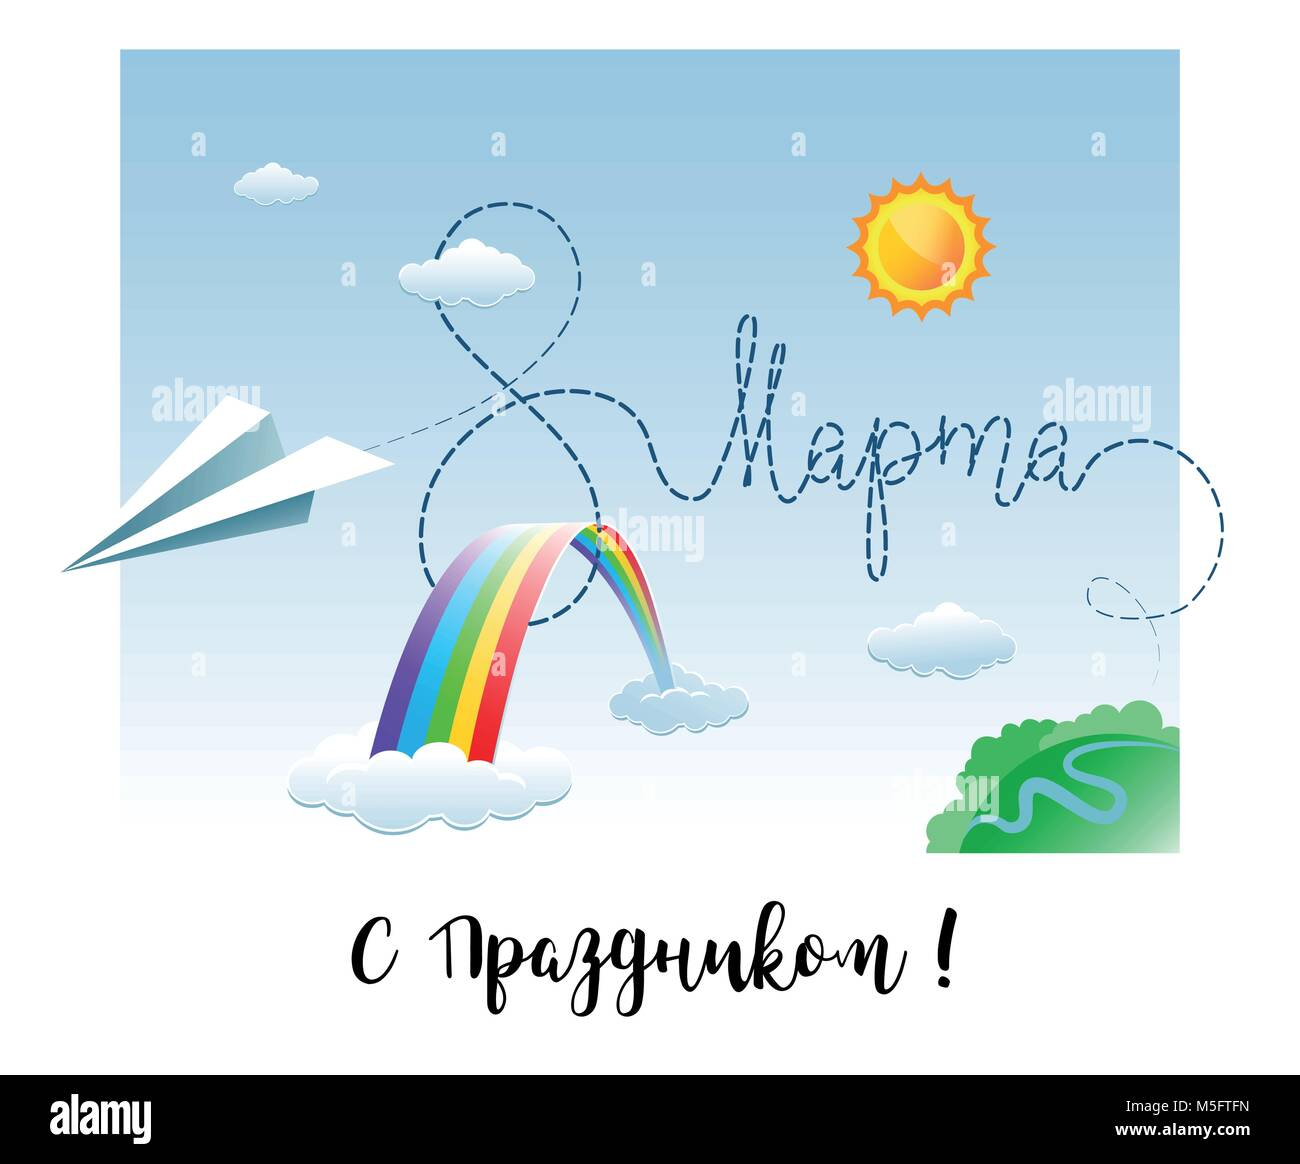 8 march greeting card in russian language with paper airplane 8 march greeting card in russian language with paper airplane clouds and rainbow vector illustration kristyandbryce Gallery